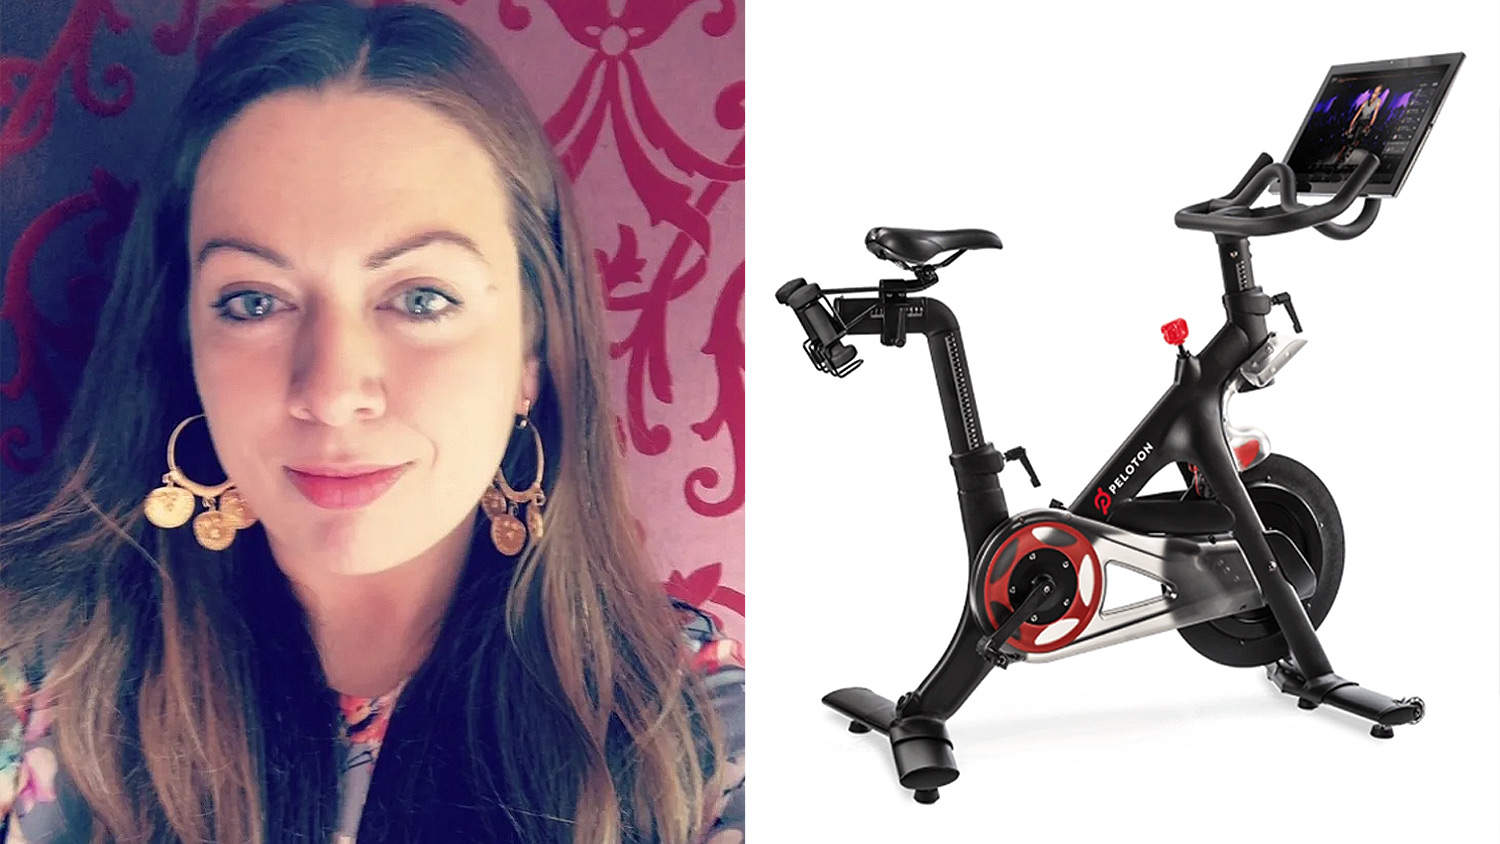 Dad Tells Daughter Not to Buy 'Preposterous' Peloton Bike in Viral Email—and Wins the Internet